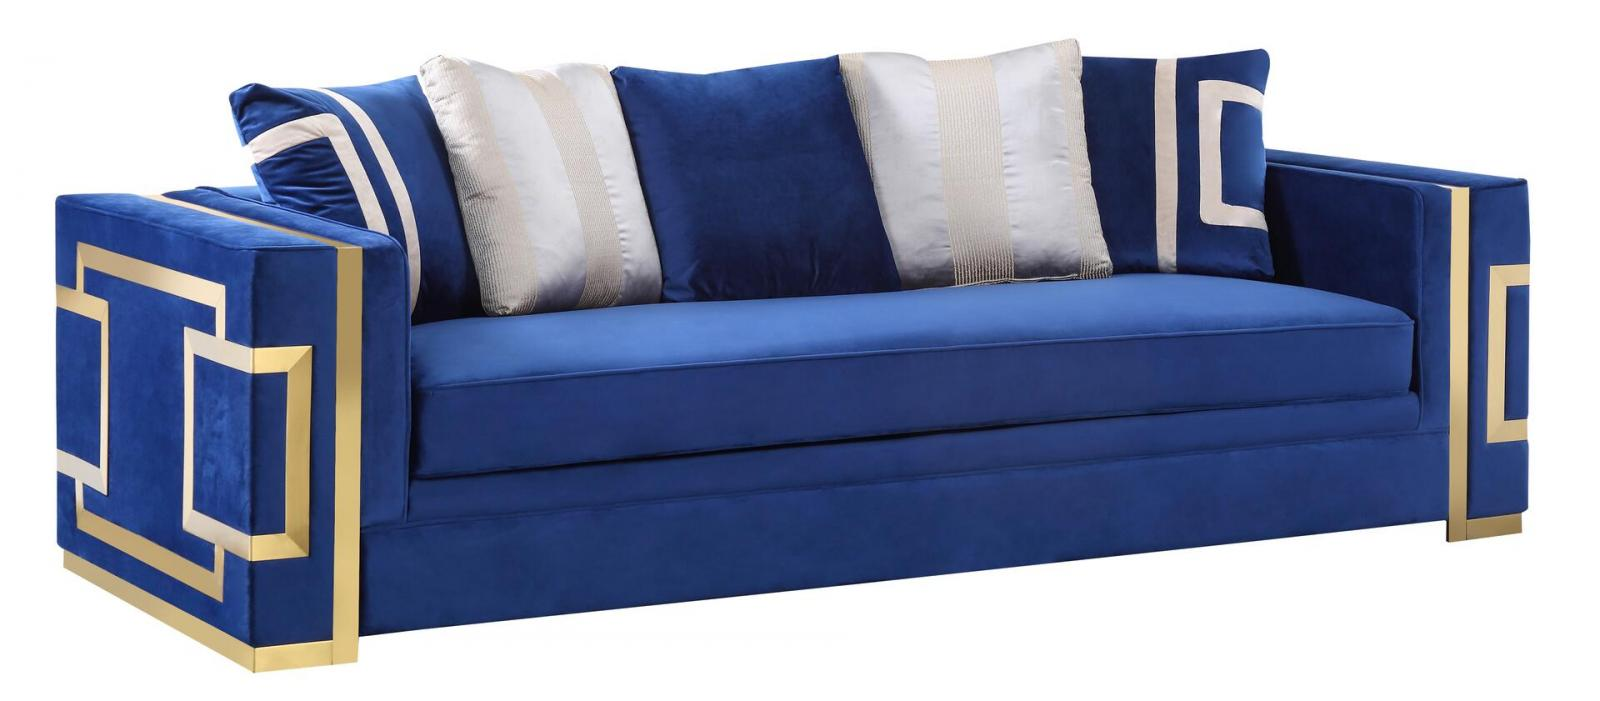 Transitional Blue, Gold Fabric Sofa 1 pcs Cosmos Furniture Lawrence-Sofa